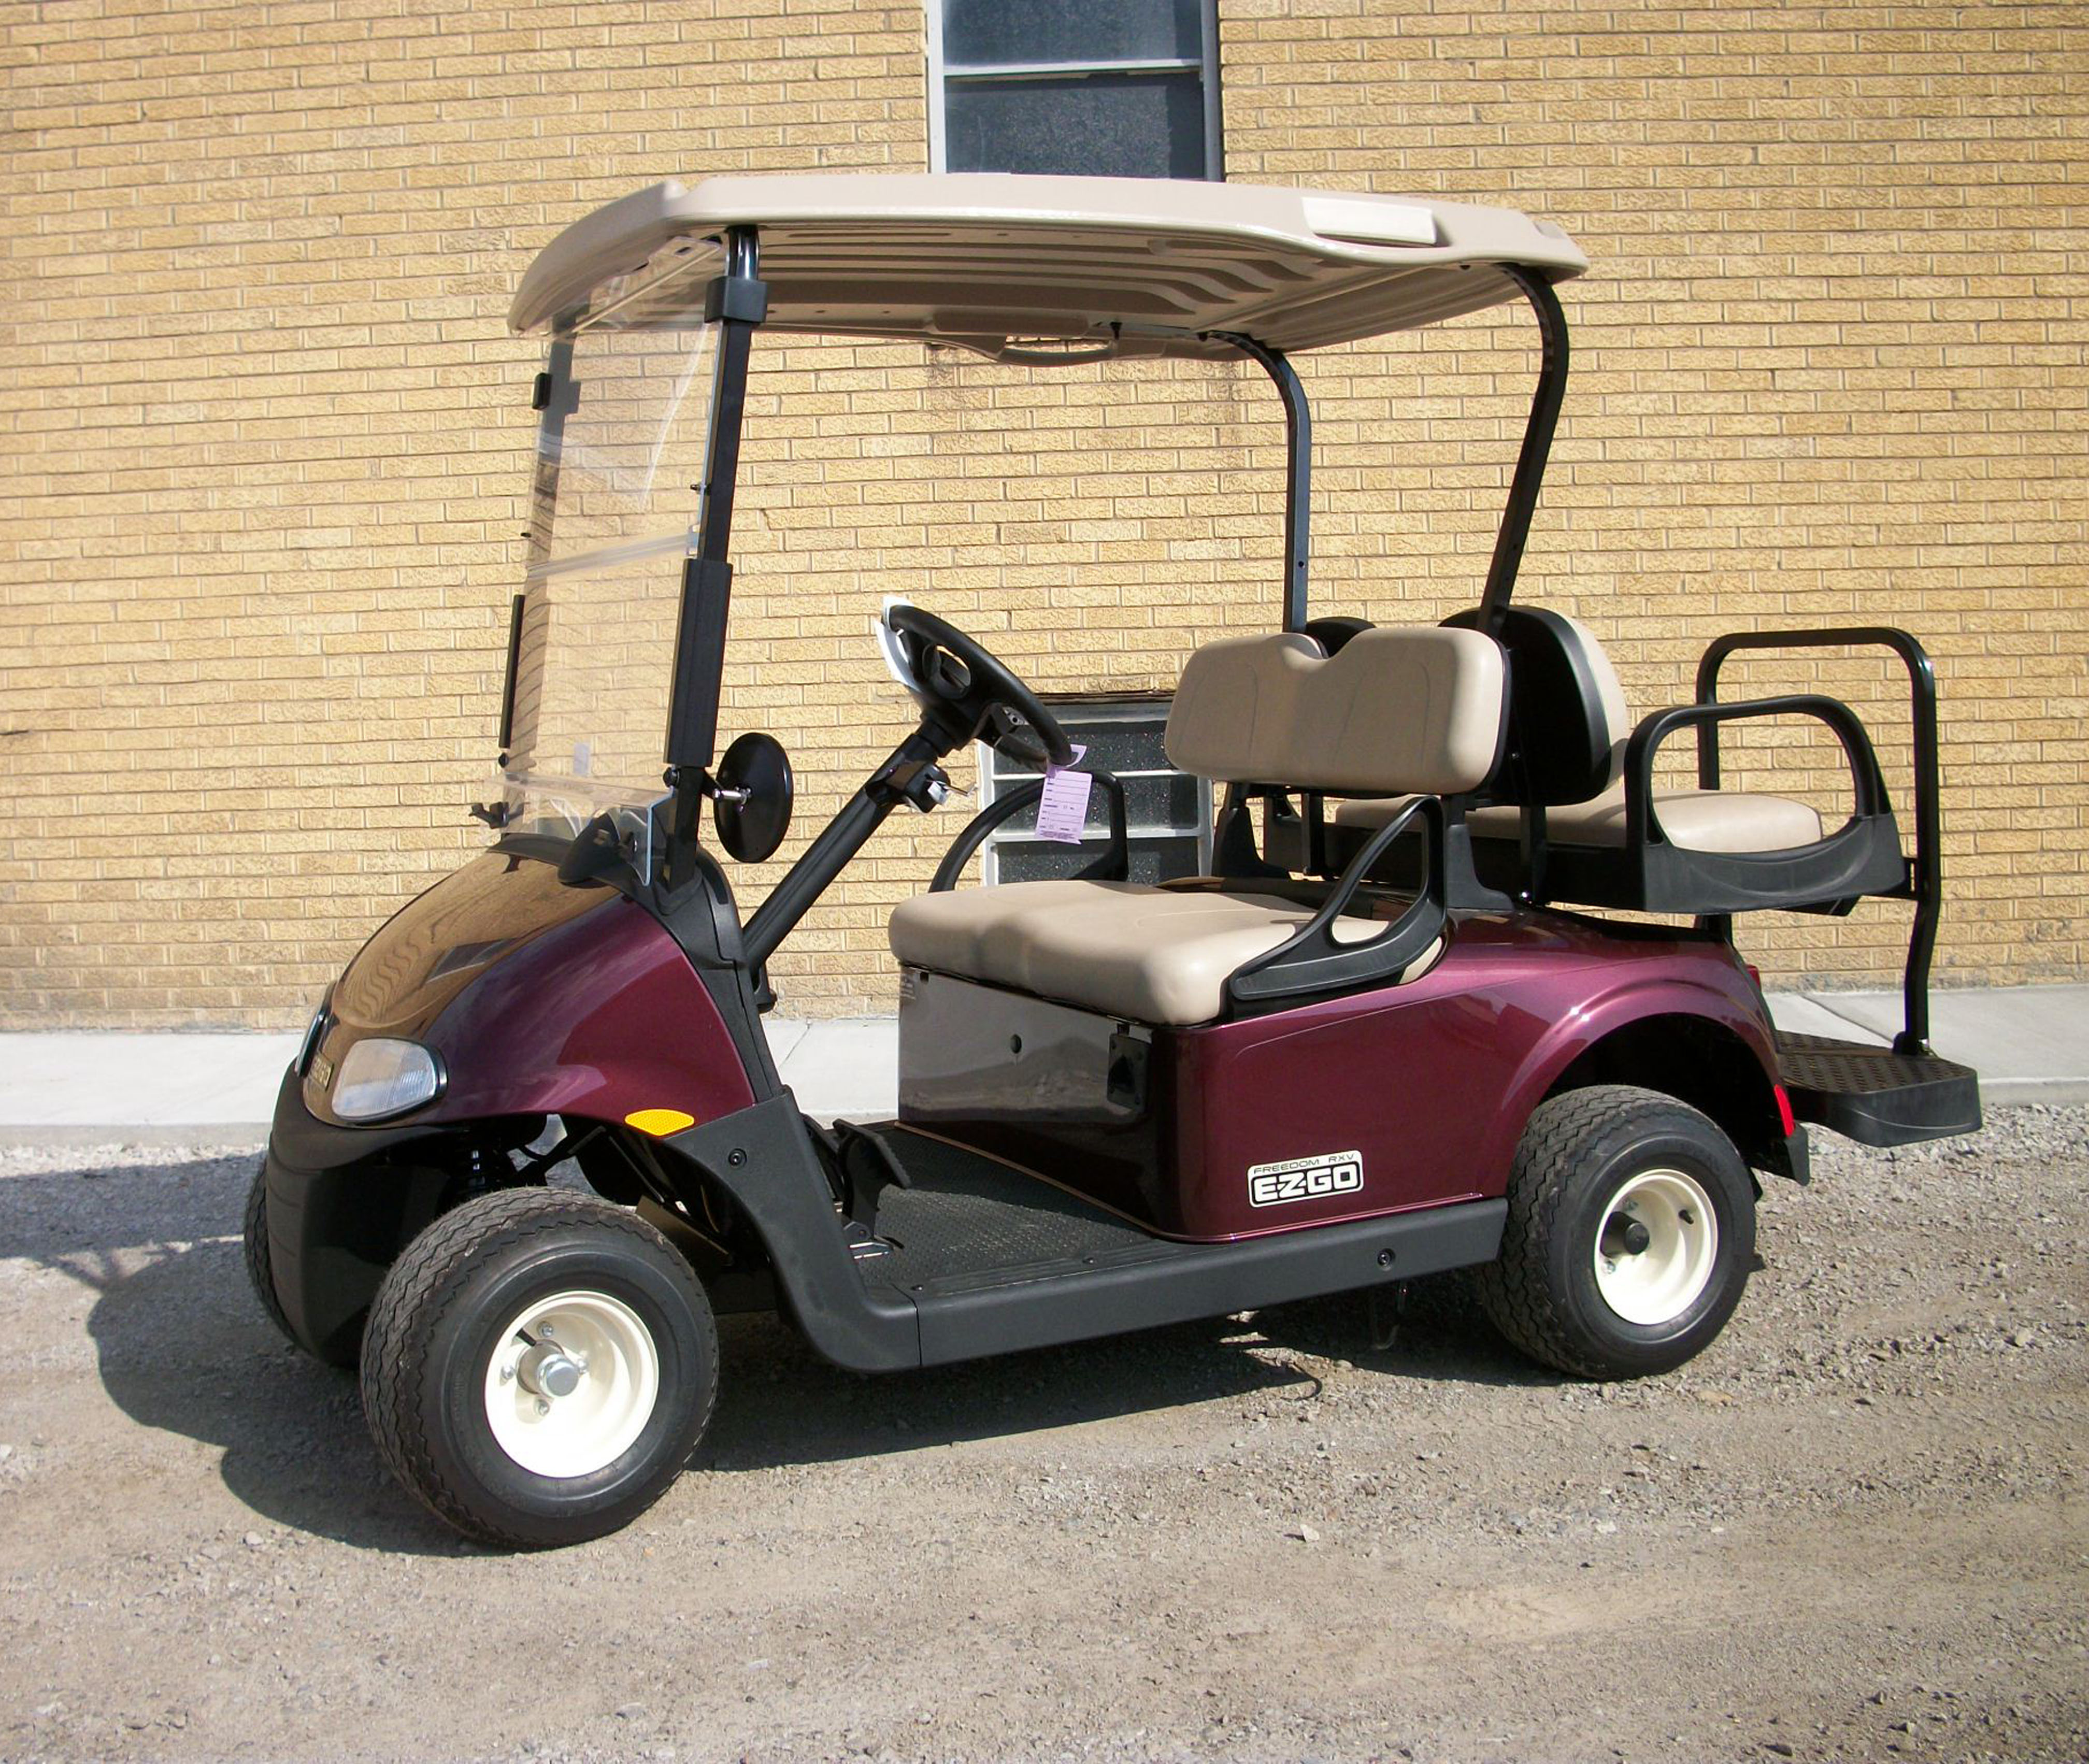 2018 Black Cherry EZGO Electric Golf Cart $7695